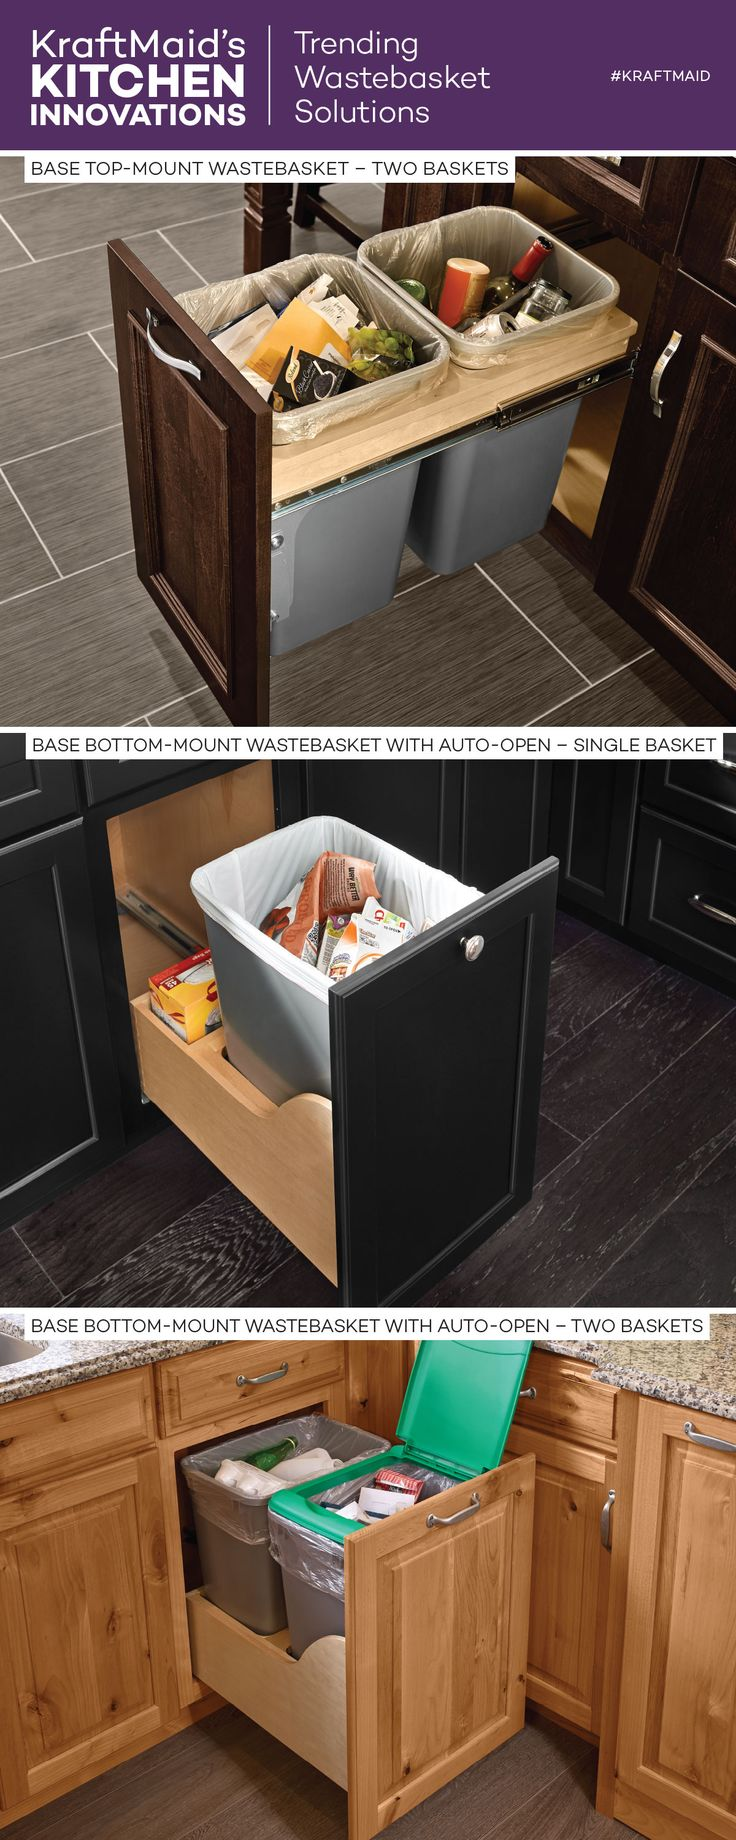 kraftmaid kitchen innovations and storage solutions